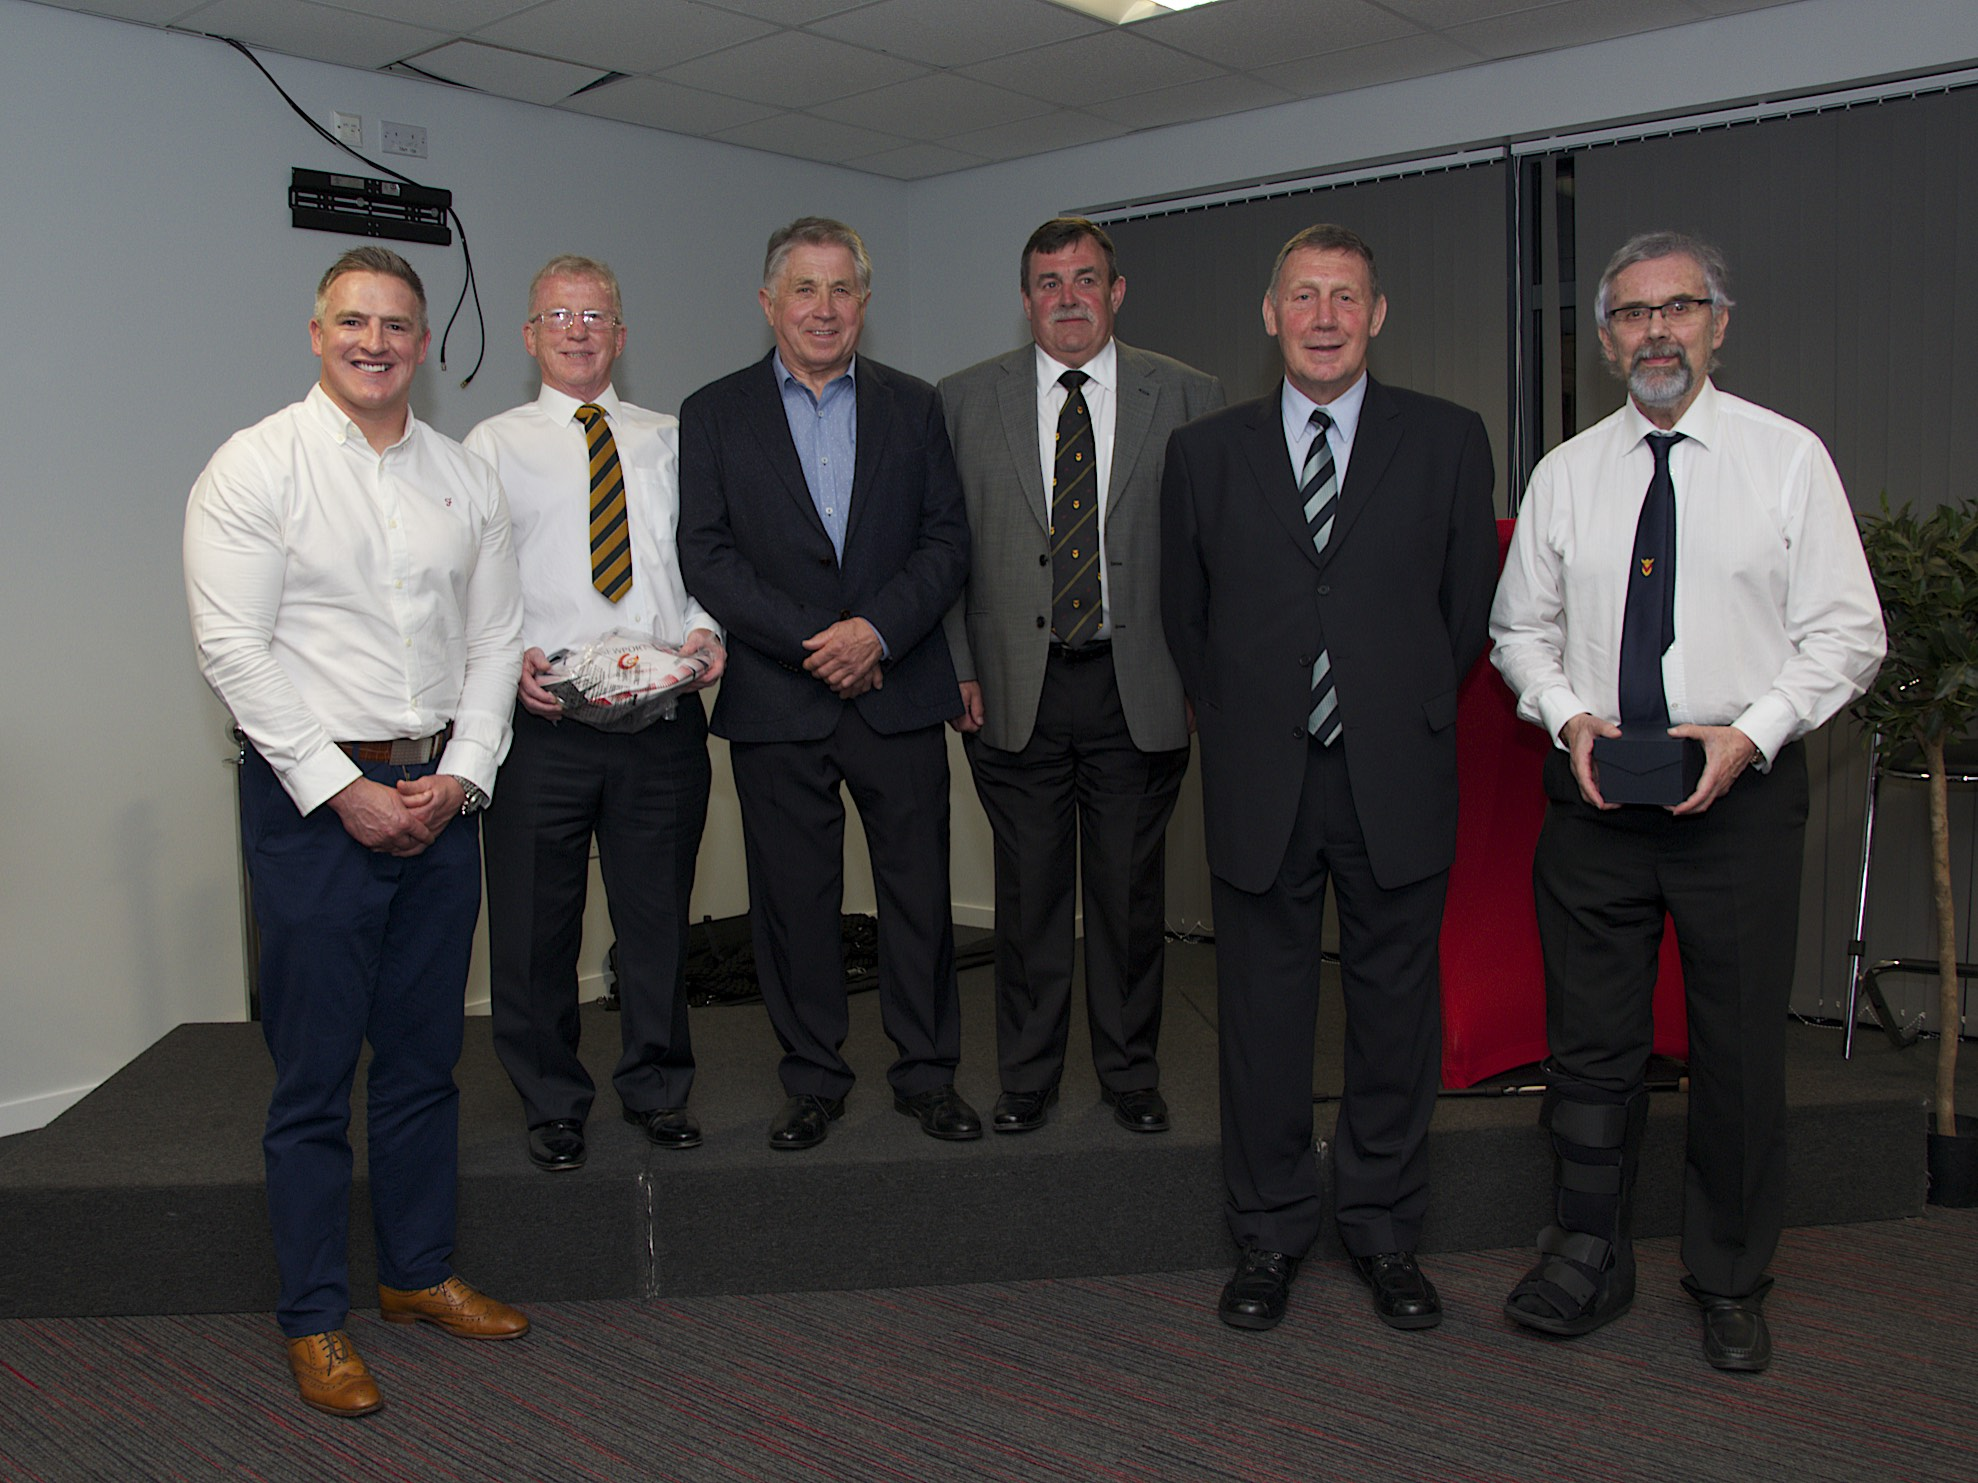 CLUB GREATS: Matthew J Watkins, Allan Evans, David Rogers, Keith James, John Jeffrey and Evan Davidge, nephew of Glynn, at Newport's seventh hall of fame evening. Doug Ackermann was also inducted. (Picture: Ron Sutcliffe)